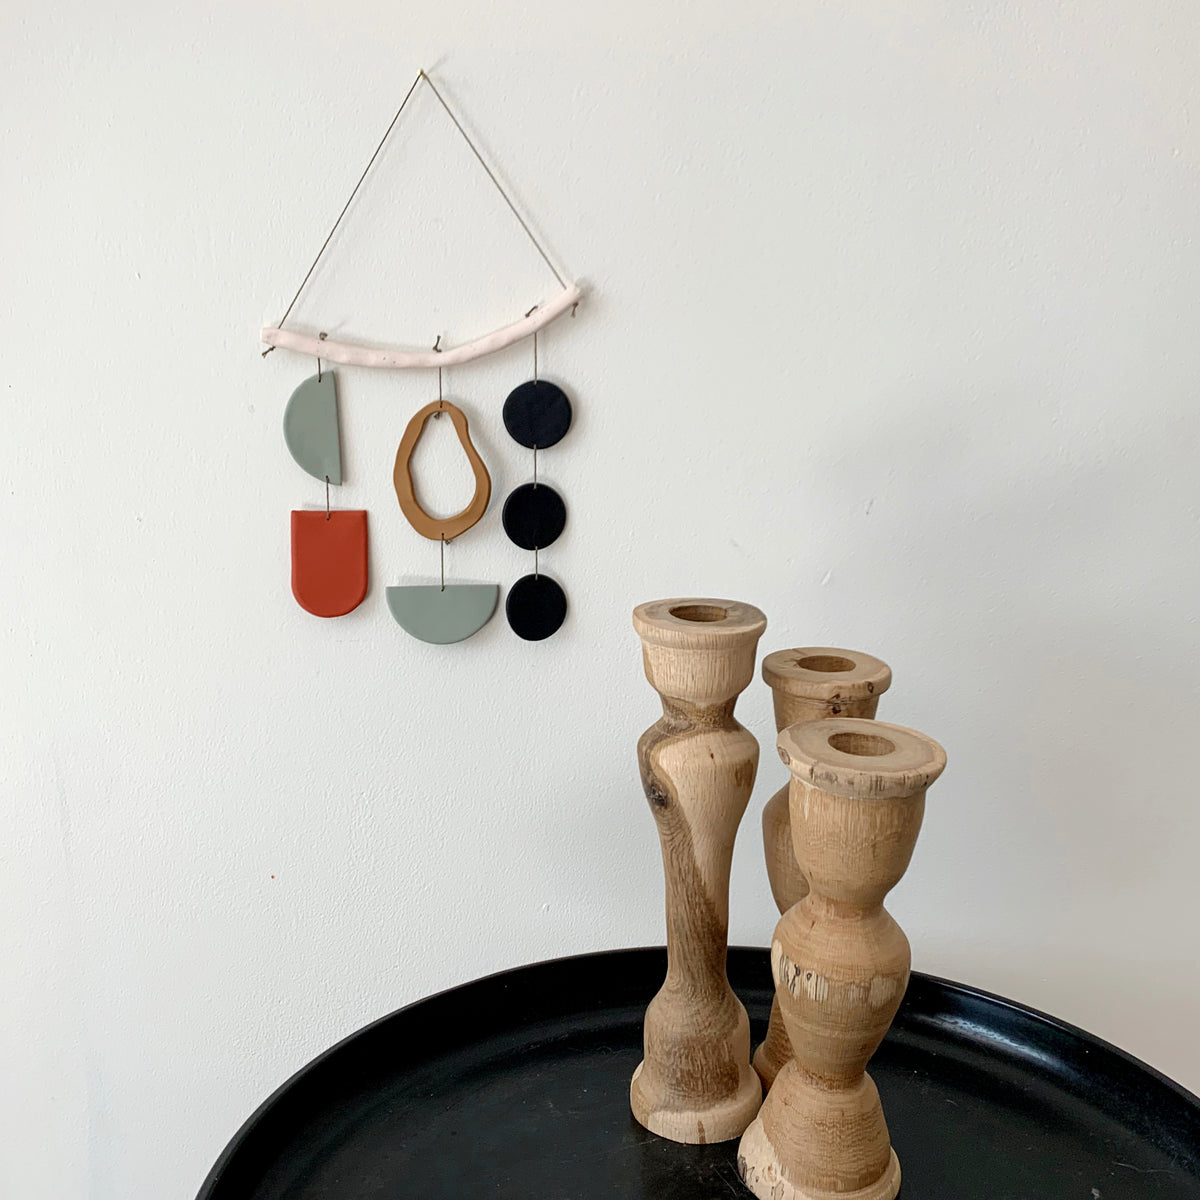 a clay wall decoration with a cream bar across the top and multicolored pieces hanging down from it in tones of sage green, terra cotta, camel, & black